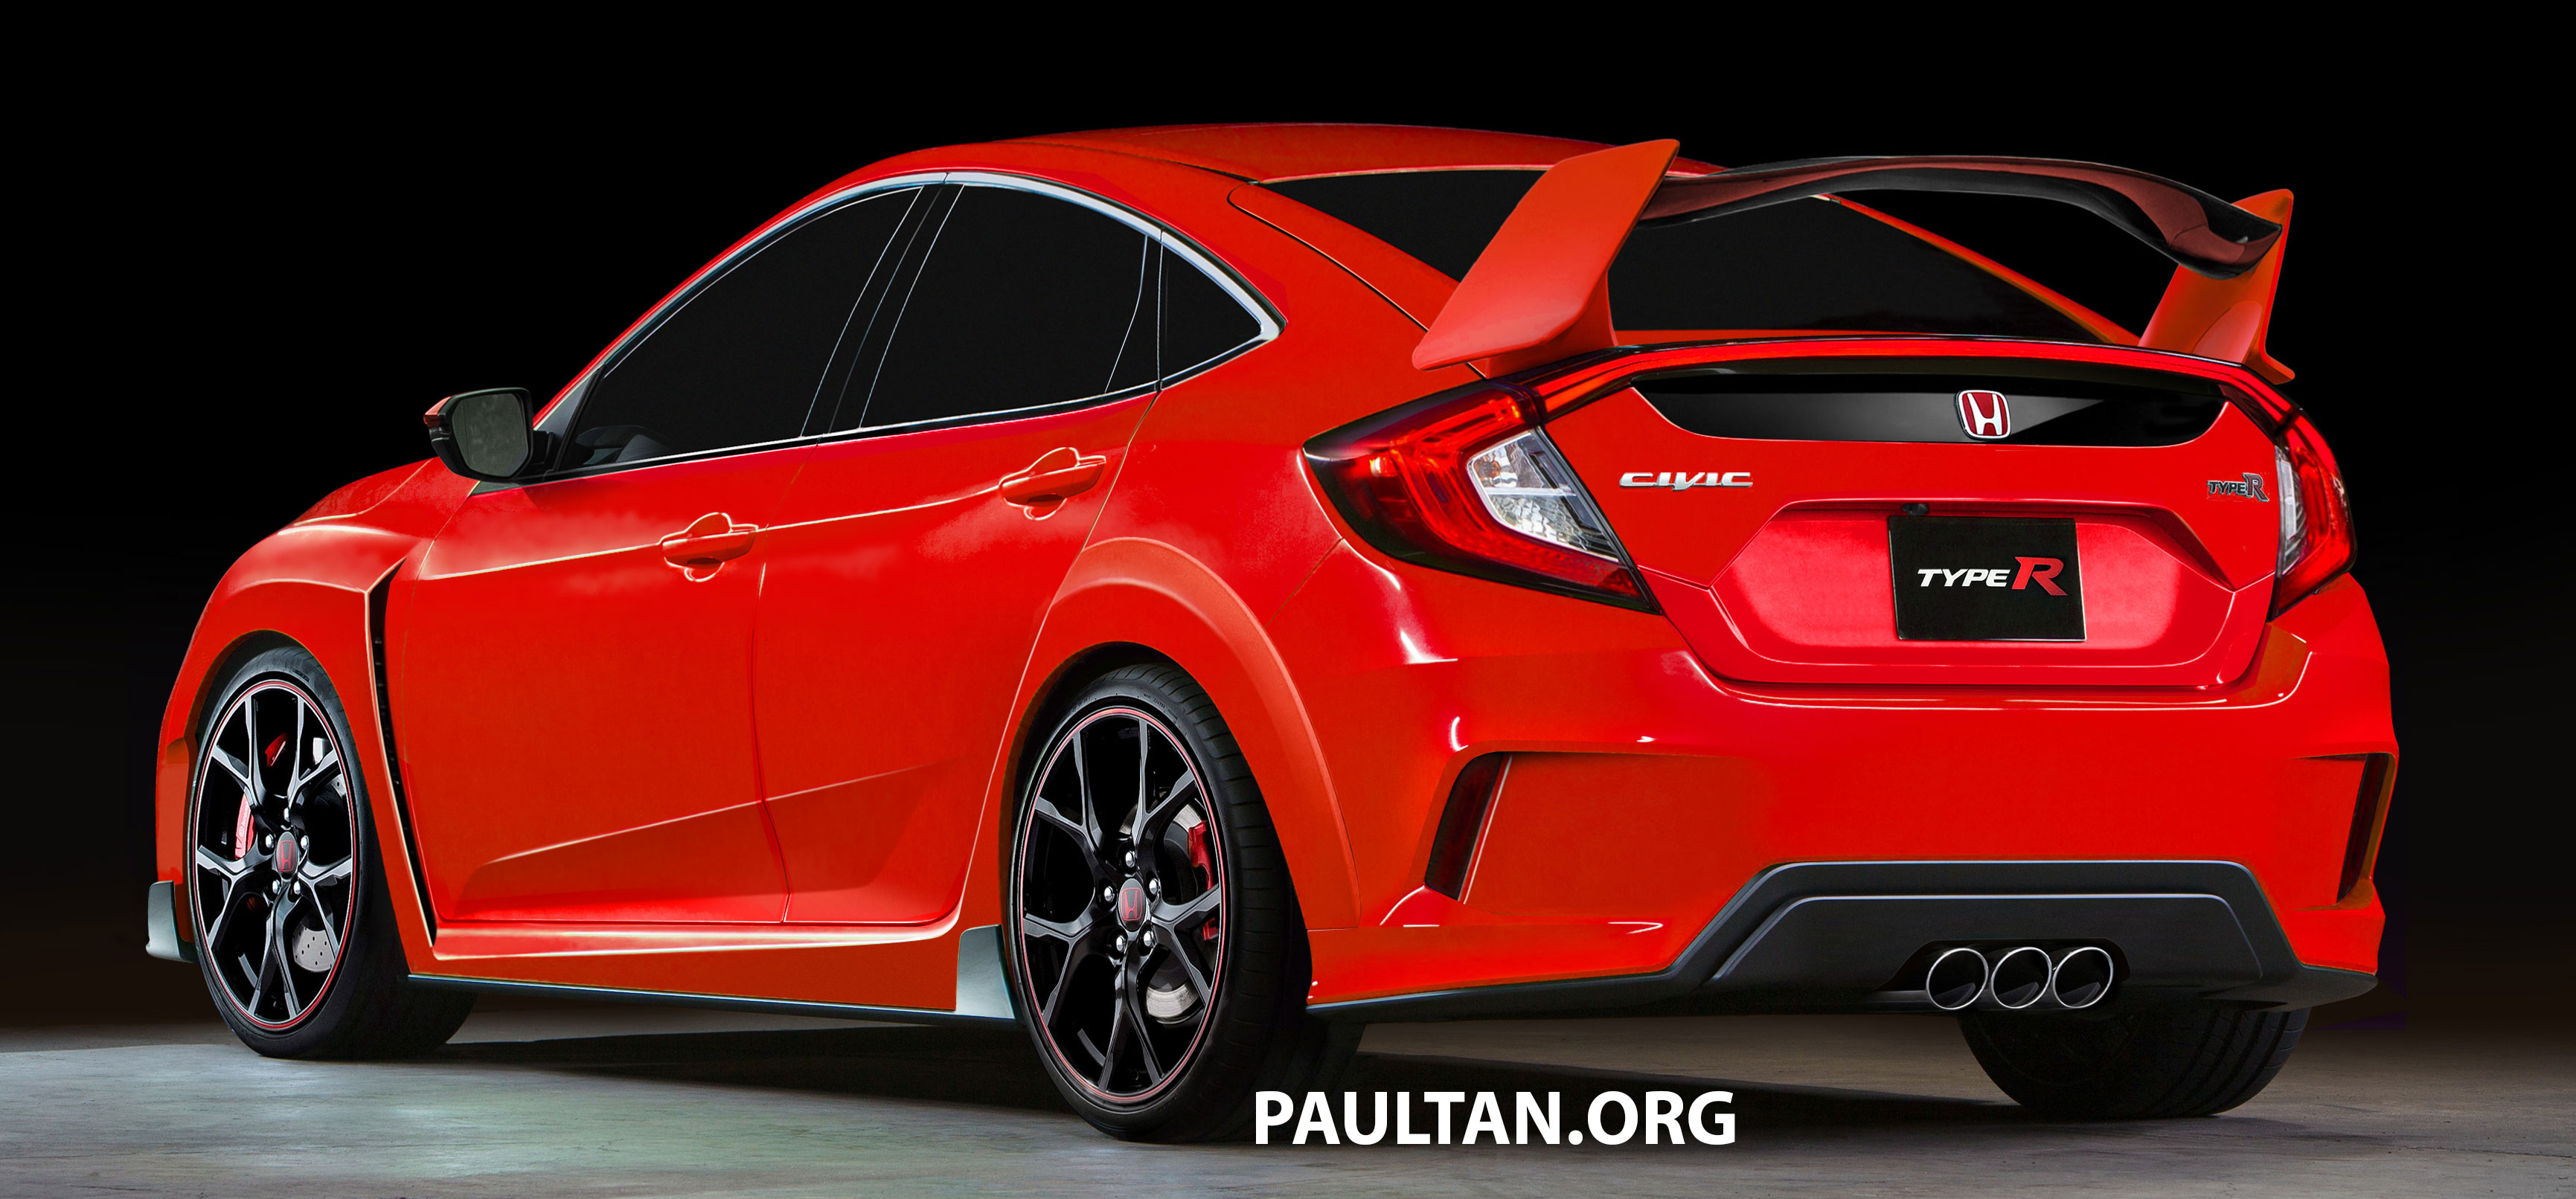 2017 honda civic type r hot hatch rendered in red image 400070 for Honda accord type r 2017